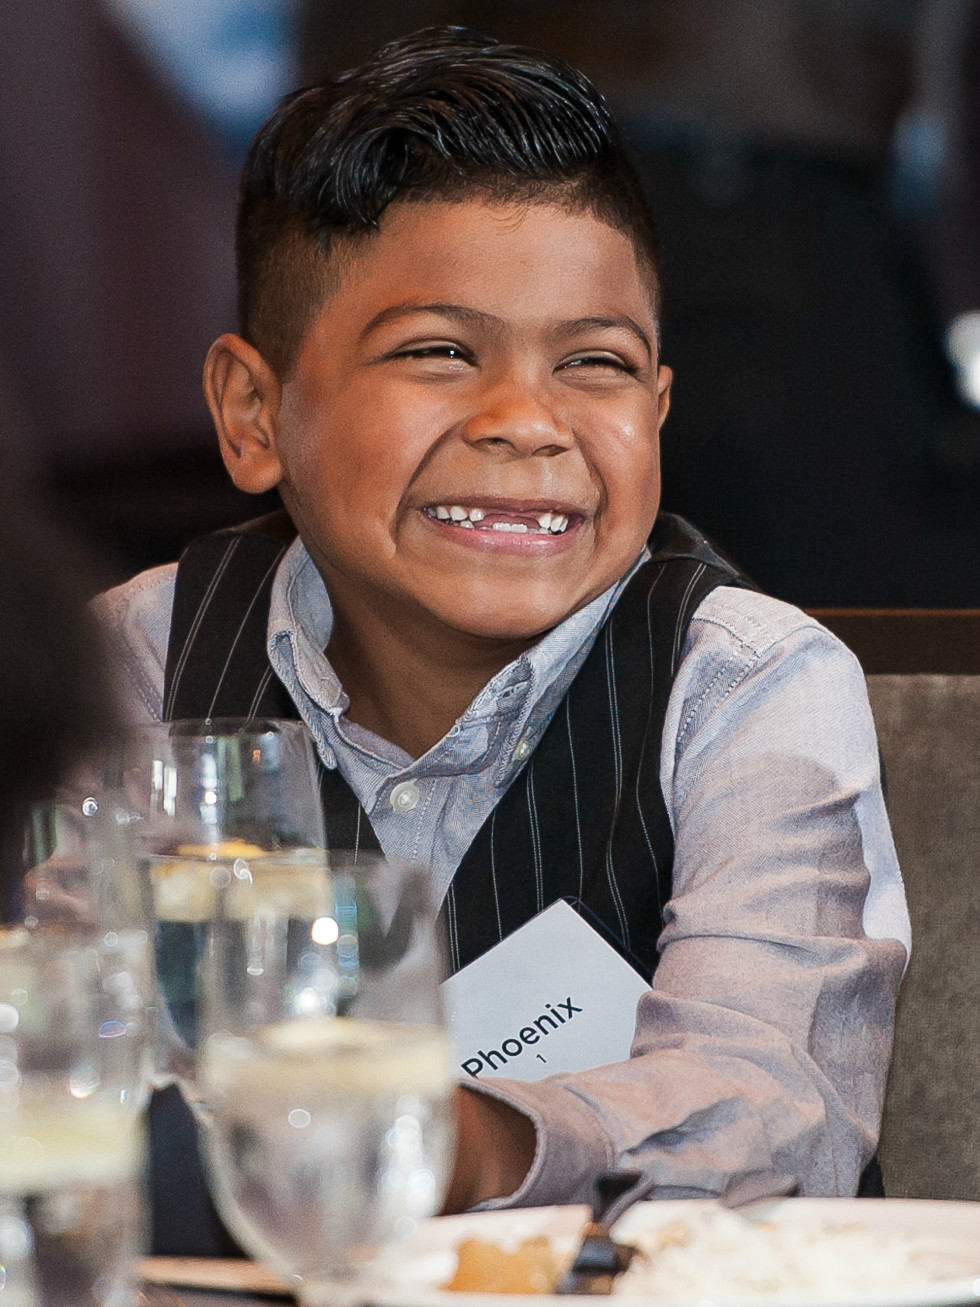 Andry Roddick Foundation Opportunity Matters Luncheon Hotel Van Zandt April 2016 kid child Phoenix